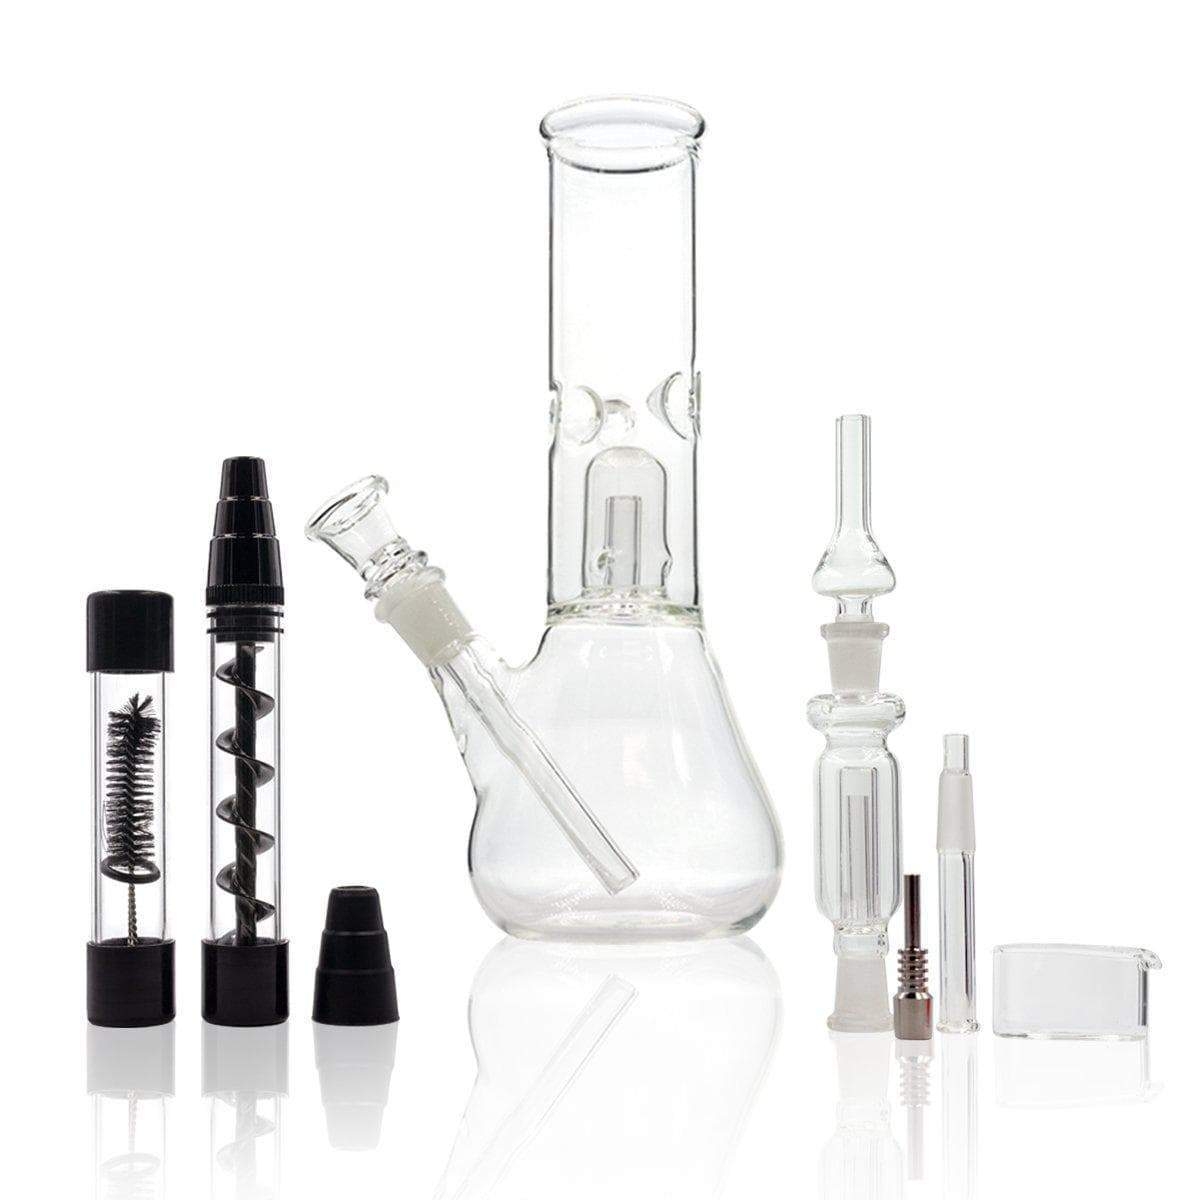 Complete set of elegant glass smoking devices like percolating beaker, nectar collector and glass blunt